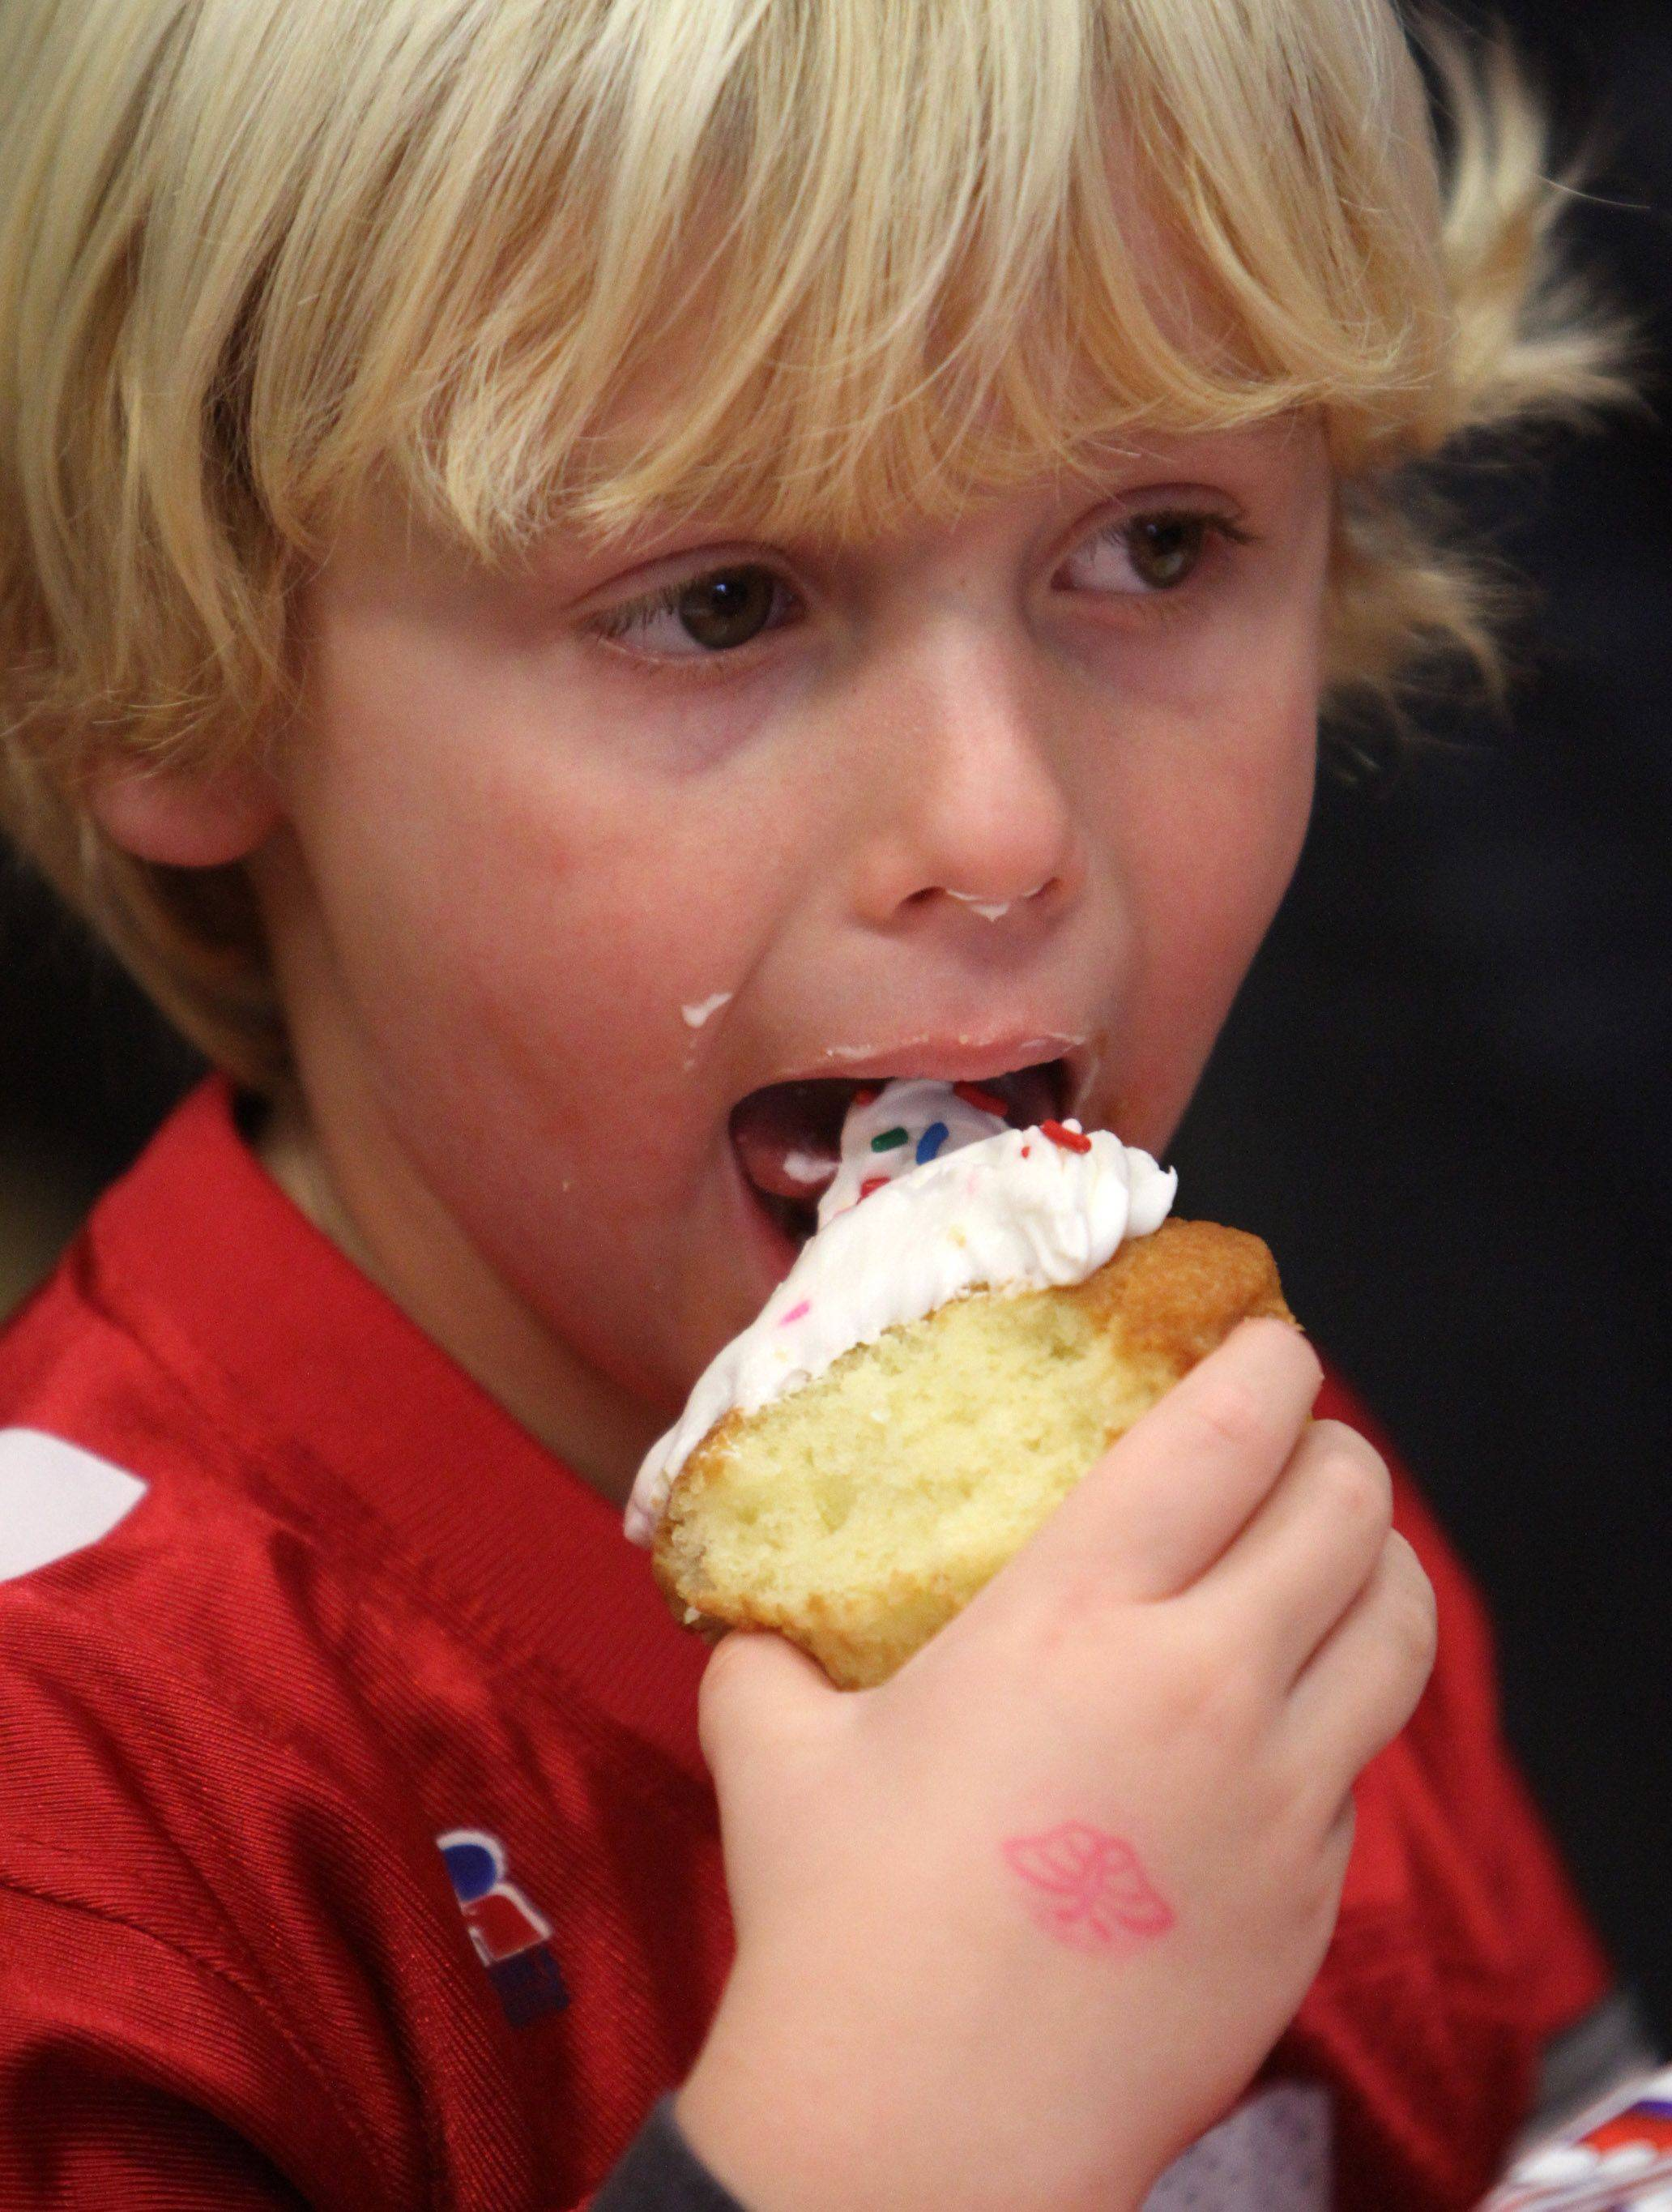 Three-year-old Jack Hieronymus of Grayslake enjoys a cupcake at a fundraiser for Bridget Kennicott of Carpentersville. Kennicott is battling a rare disorder known as Batten disease. The event was held at Kohl's Children's Museum in Glenview on Saturday, November 13. Bridget's mother, Sara Kennicott, is a Barrington school teacher.